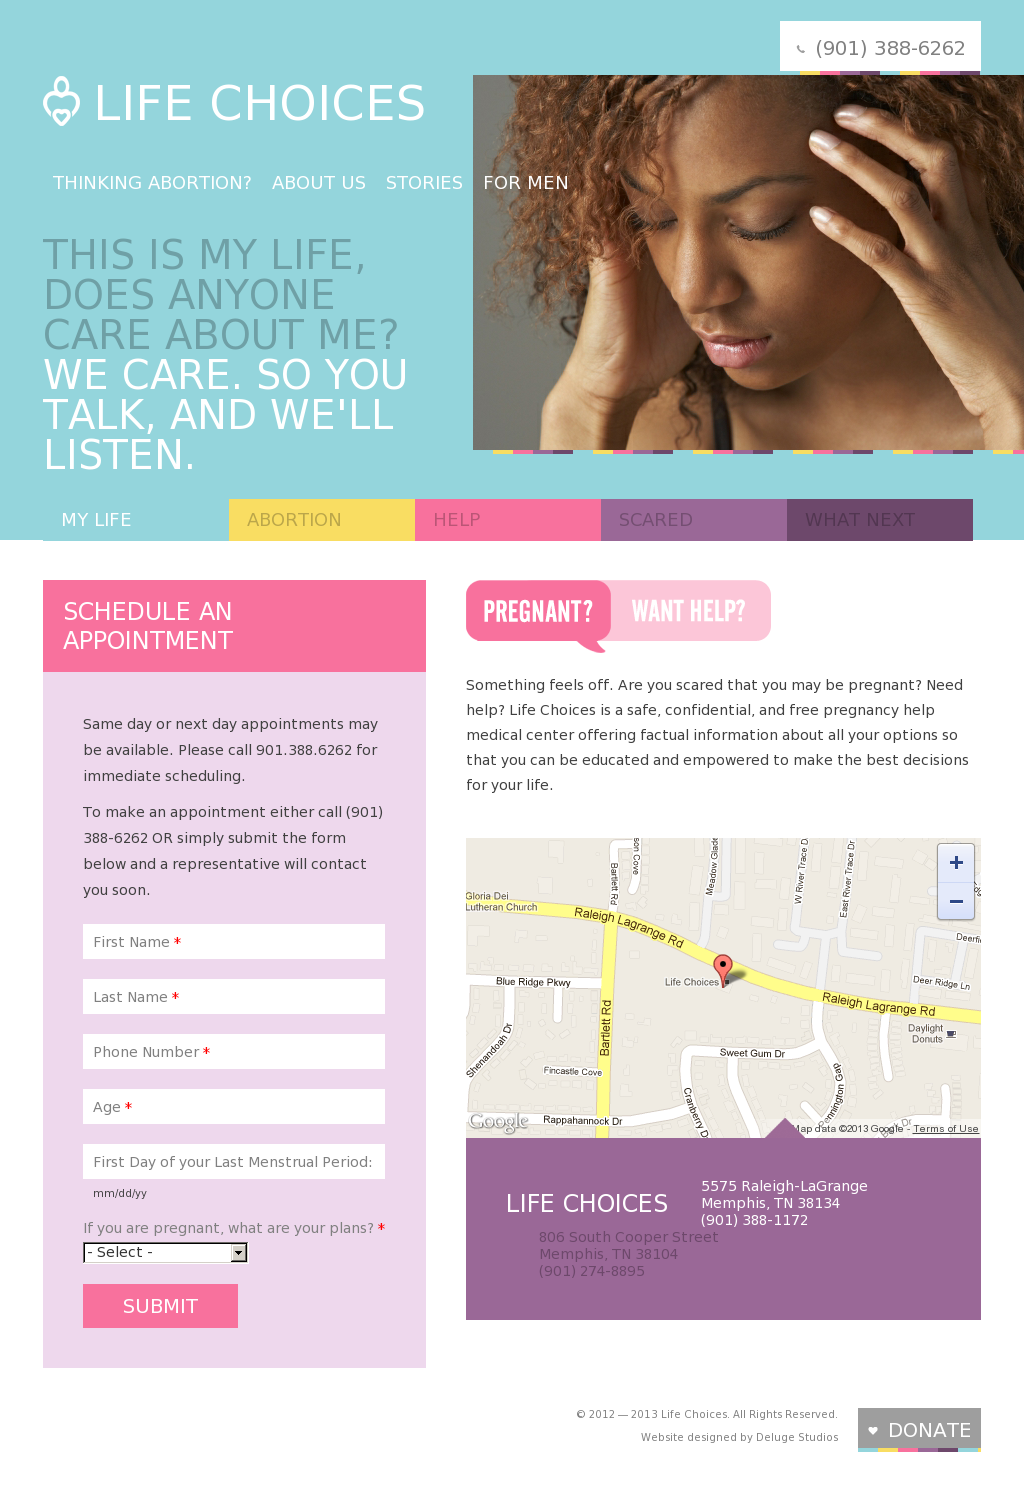 Life Choices Memphis Website Design With Images Web Design Inspiration Web Design Life Choices